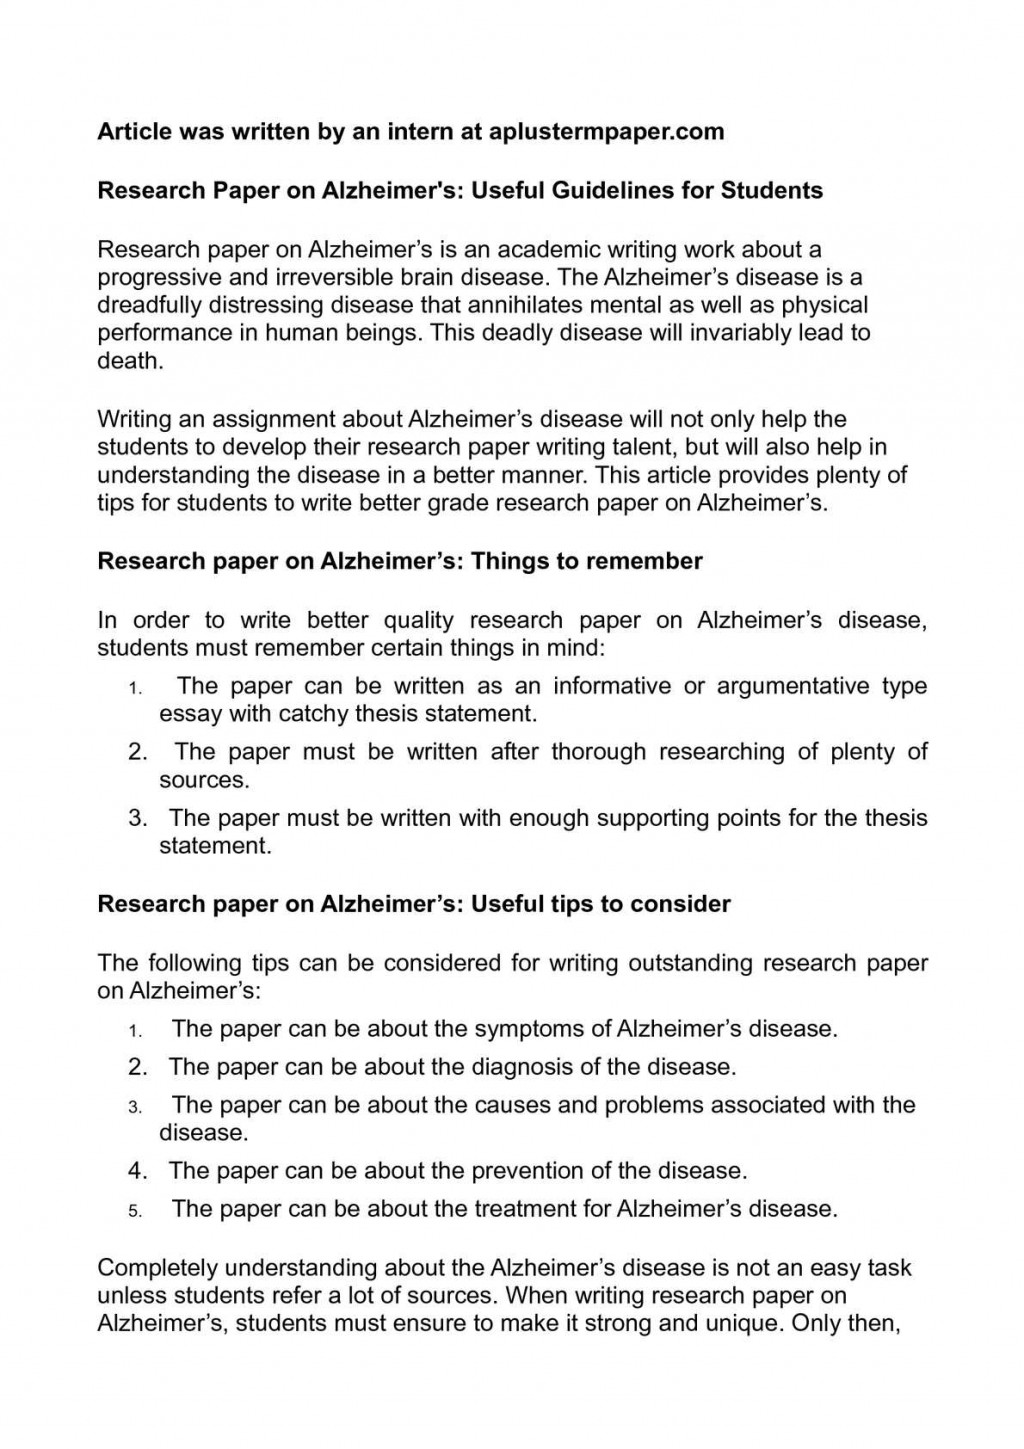 001 Research Paper Alzheimers Disease Outline Incredible Example For Alzheimer's Alzheimer Large